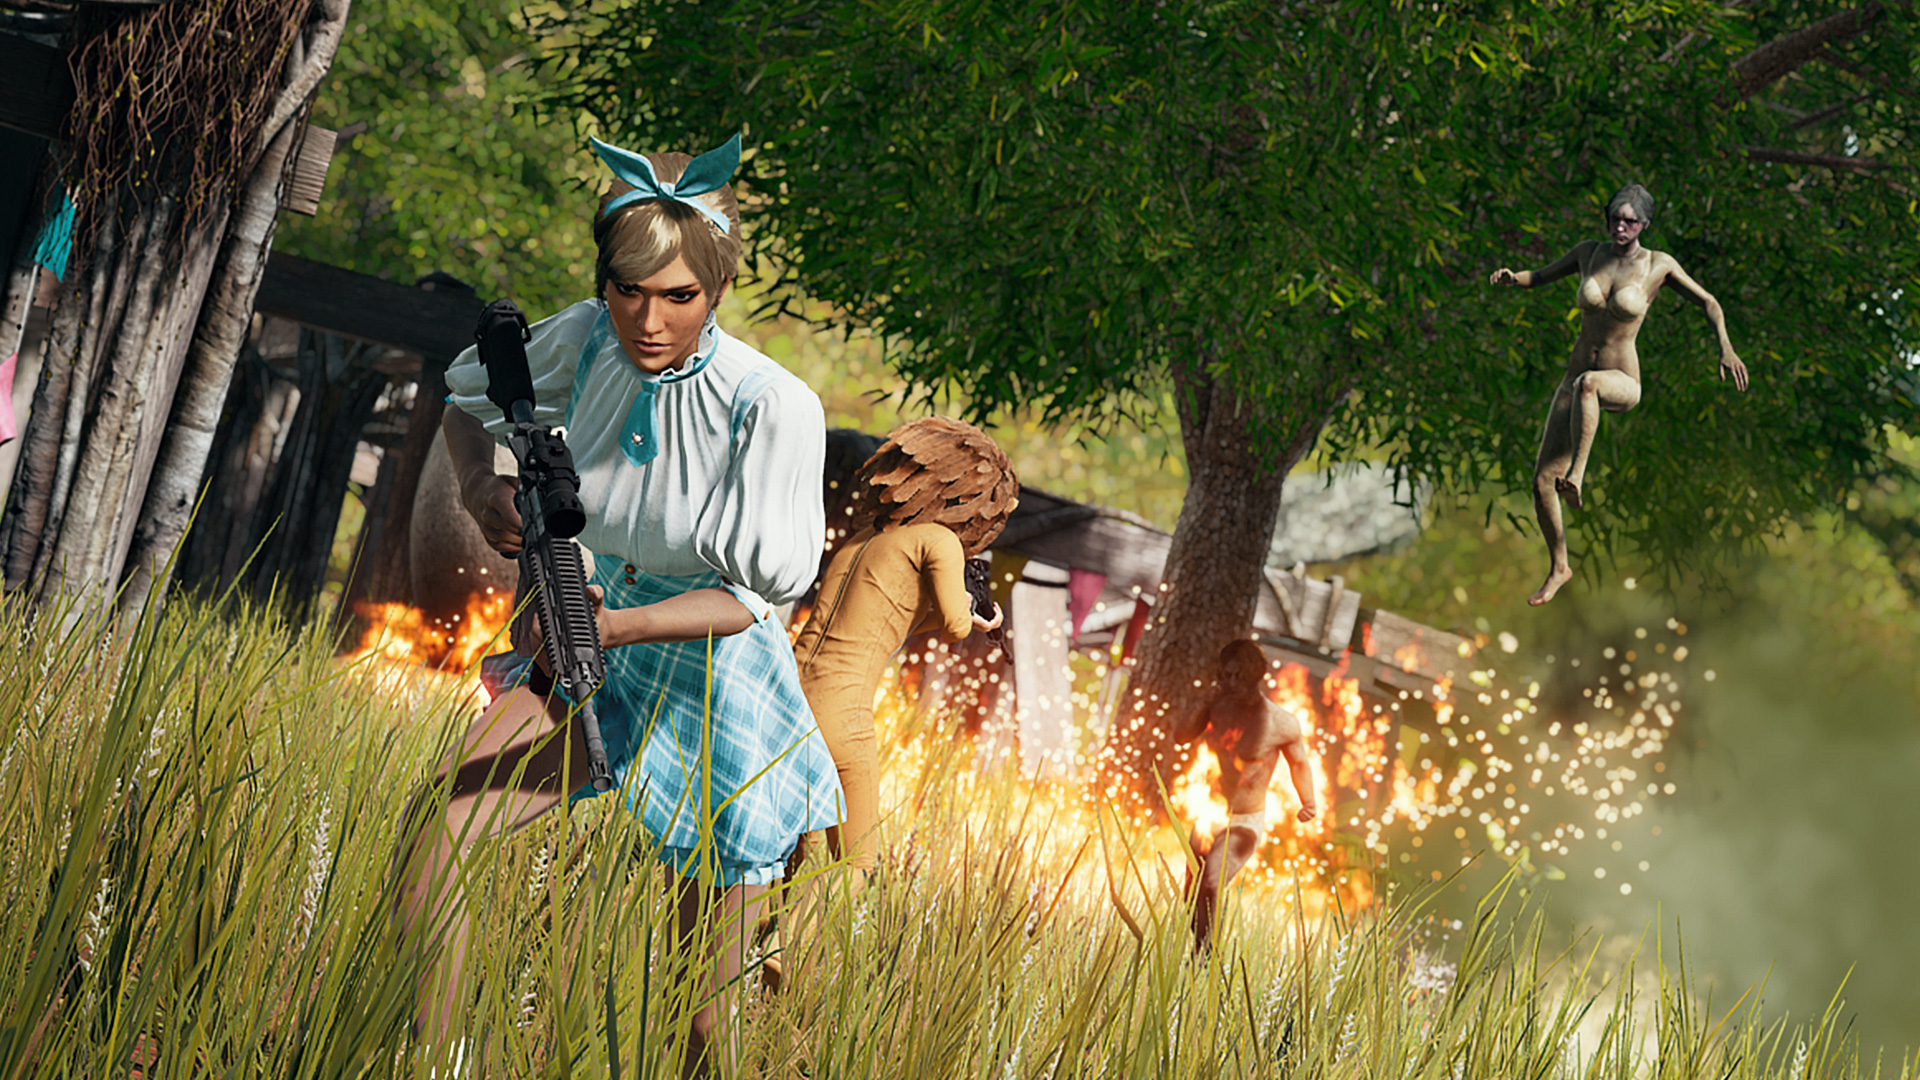 PUBG players on PC were incorrectly banned due to an update bug